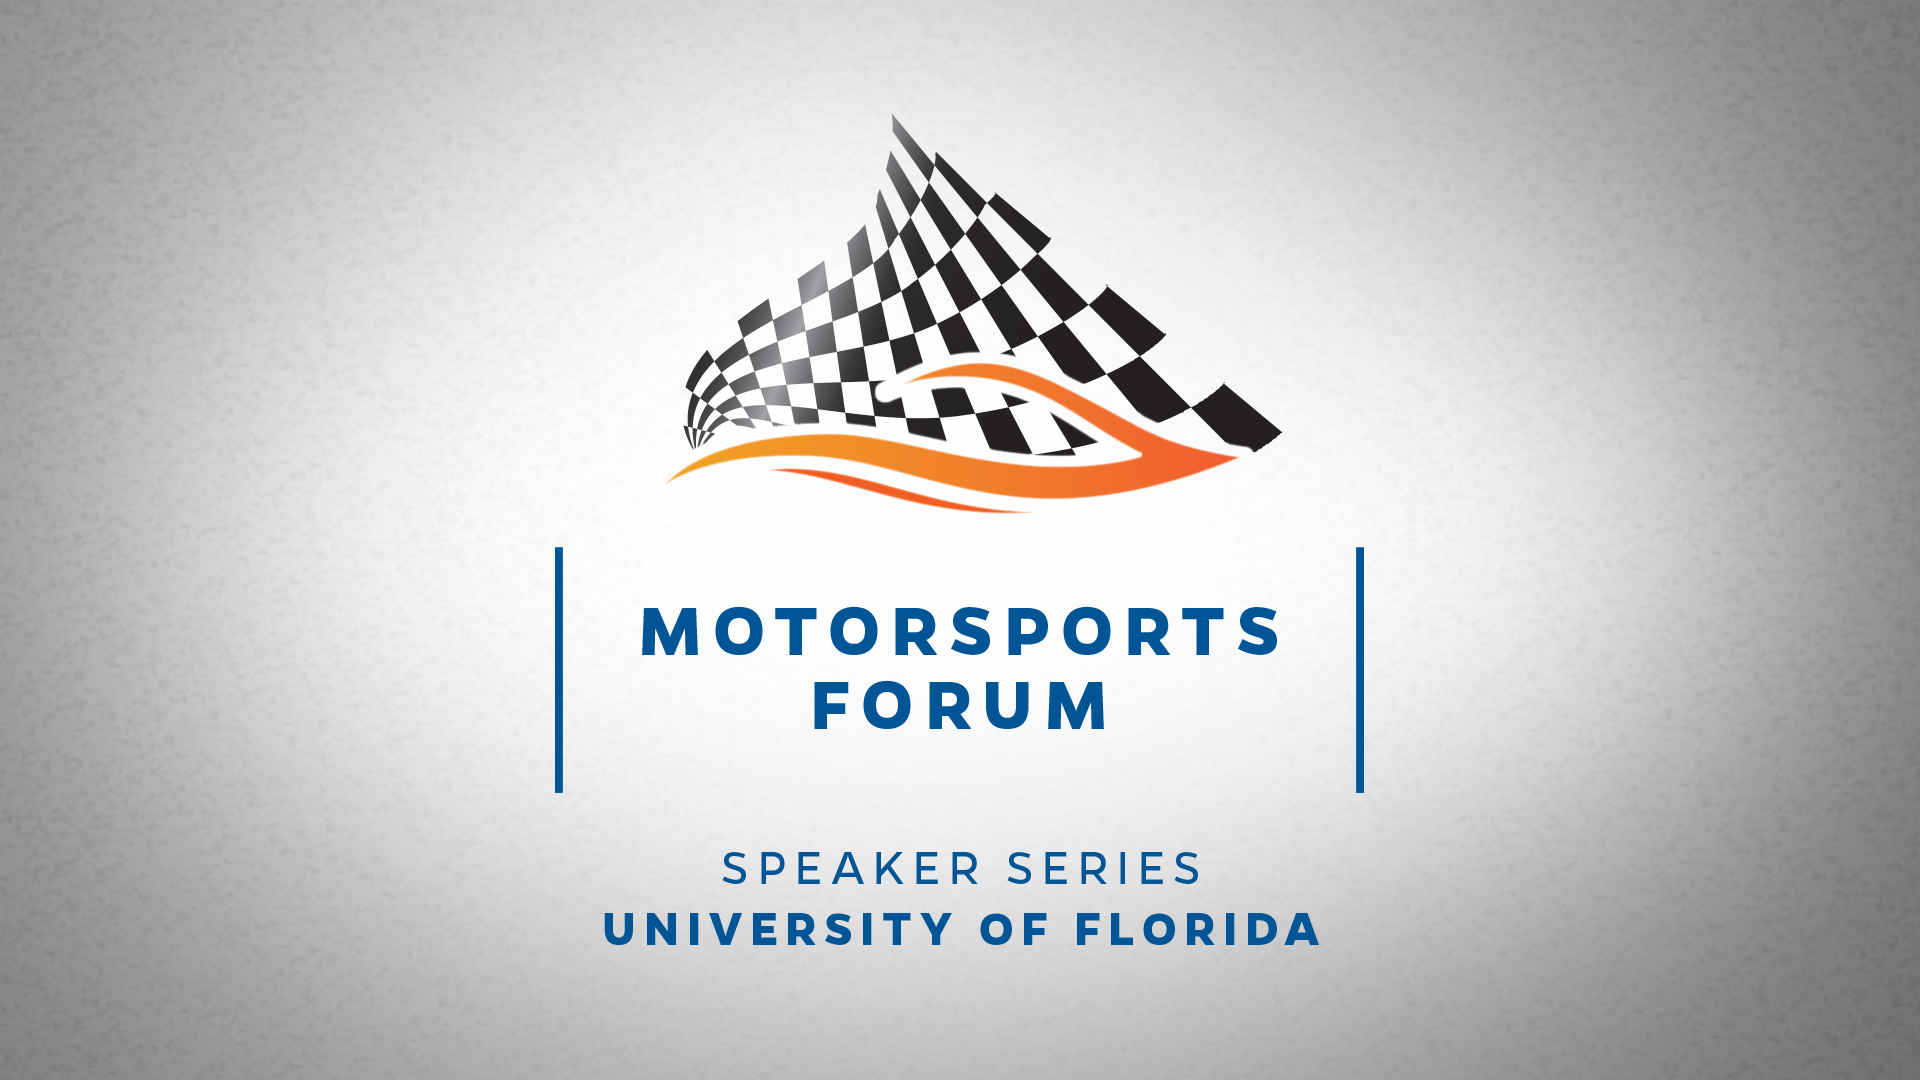 2020 Motorsports Forum continues with Charlie Kimball on March 3